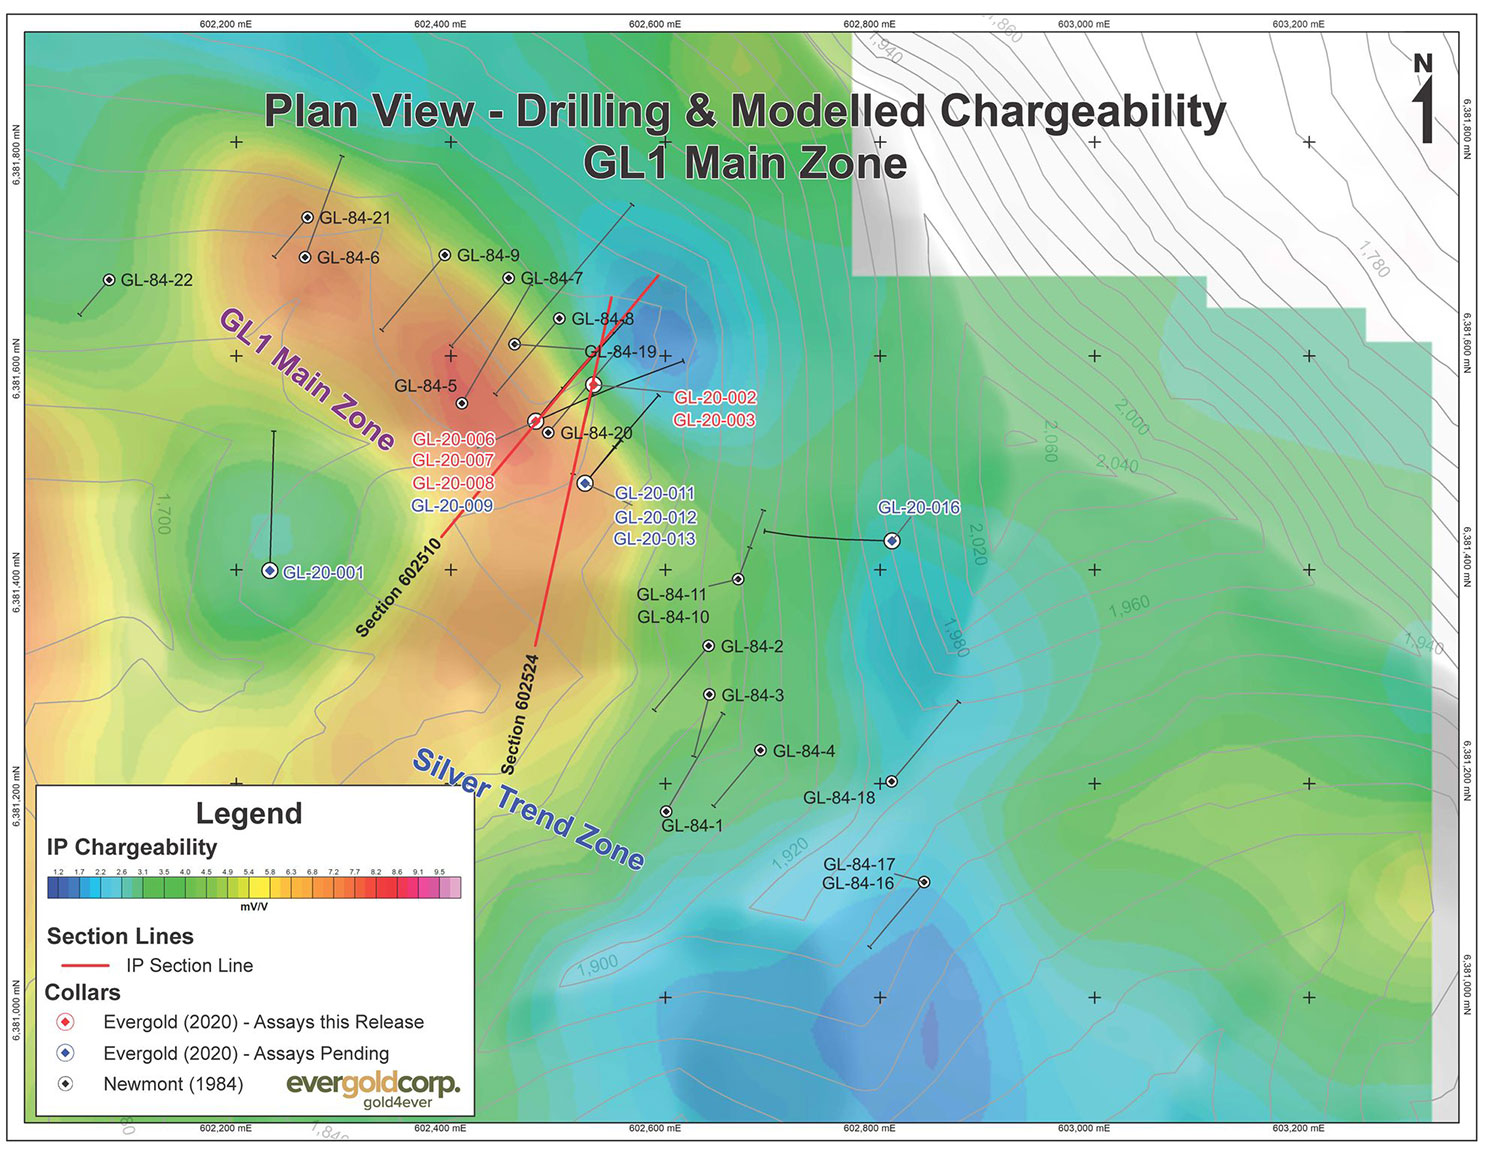 chargeability plan views